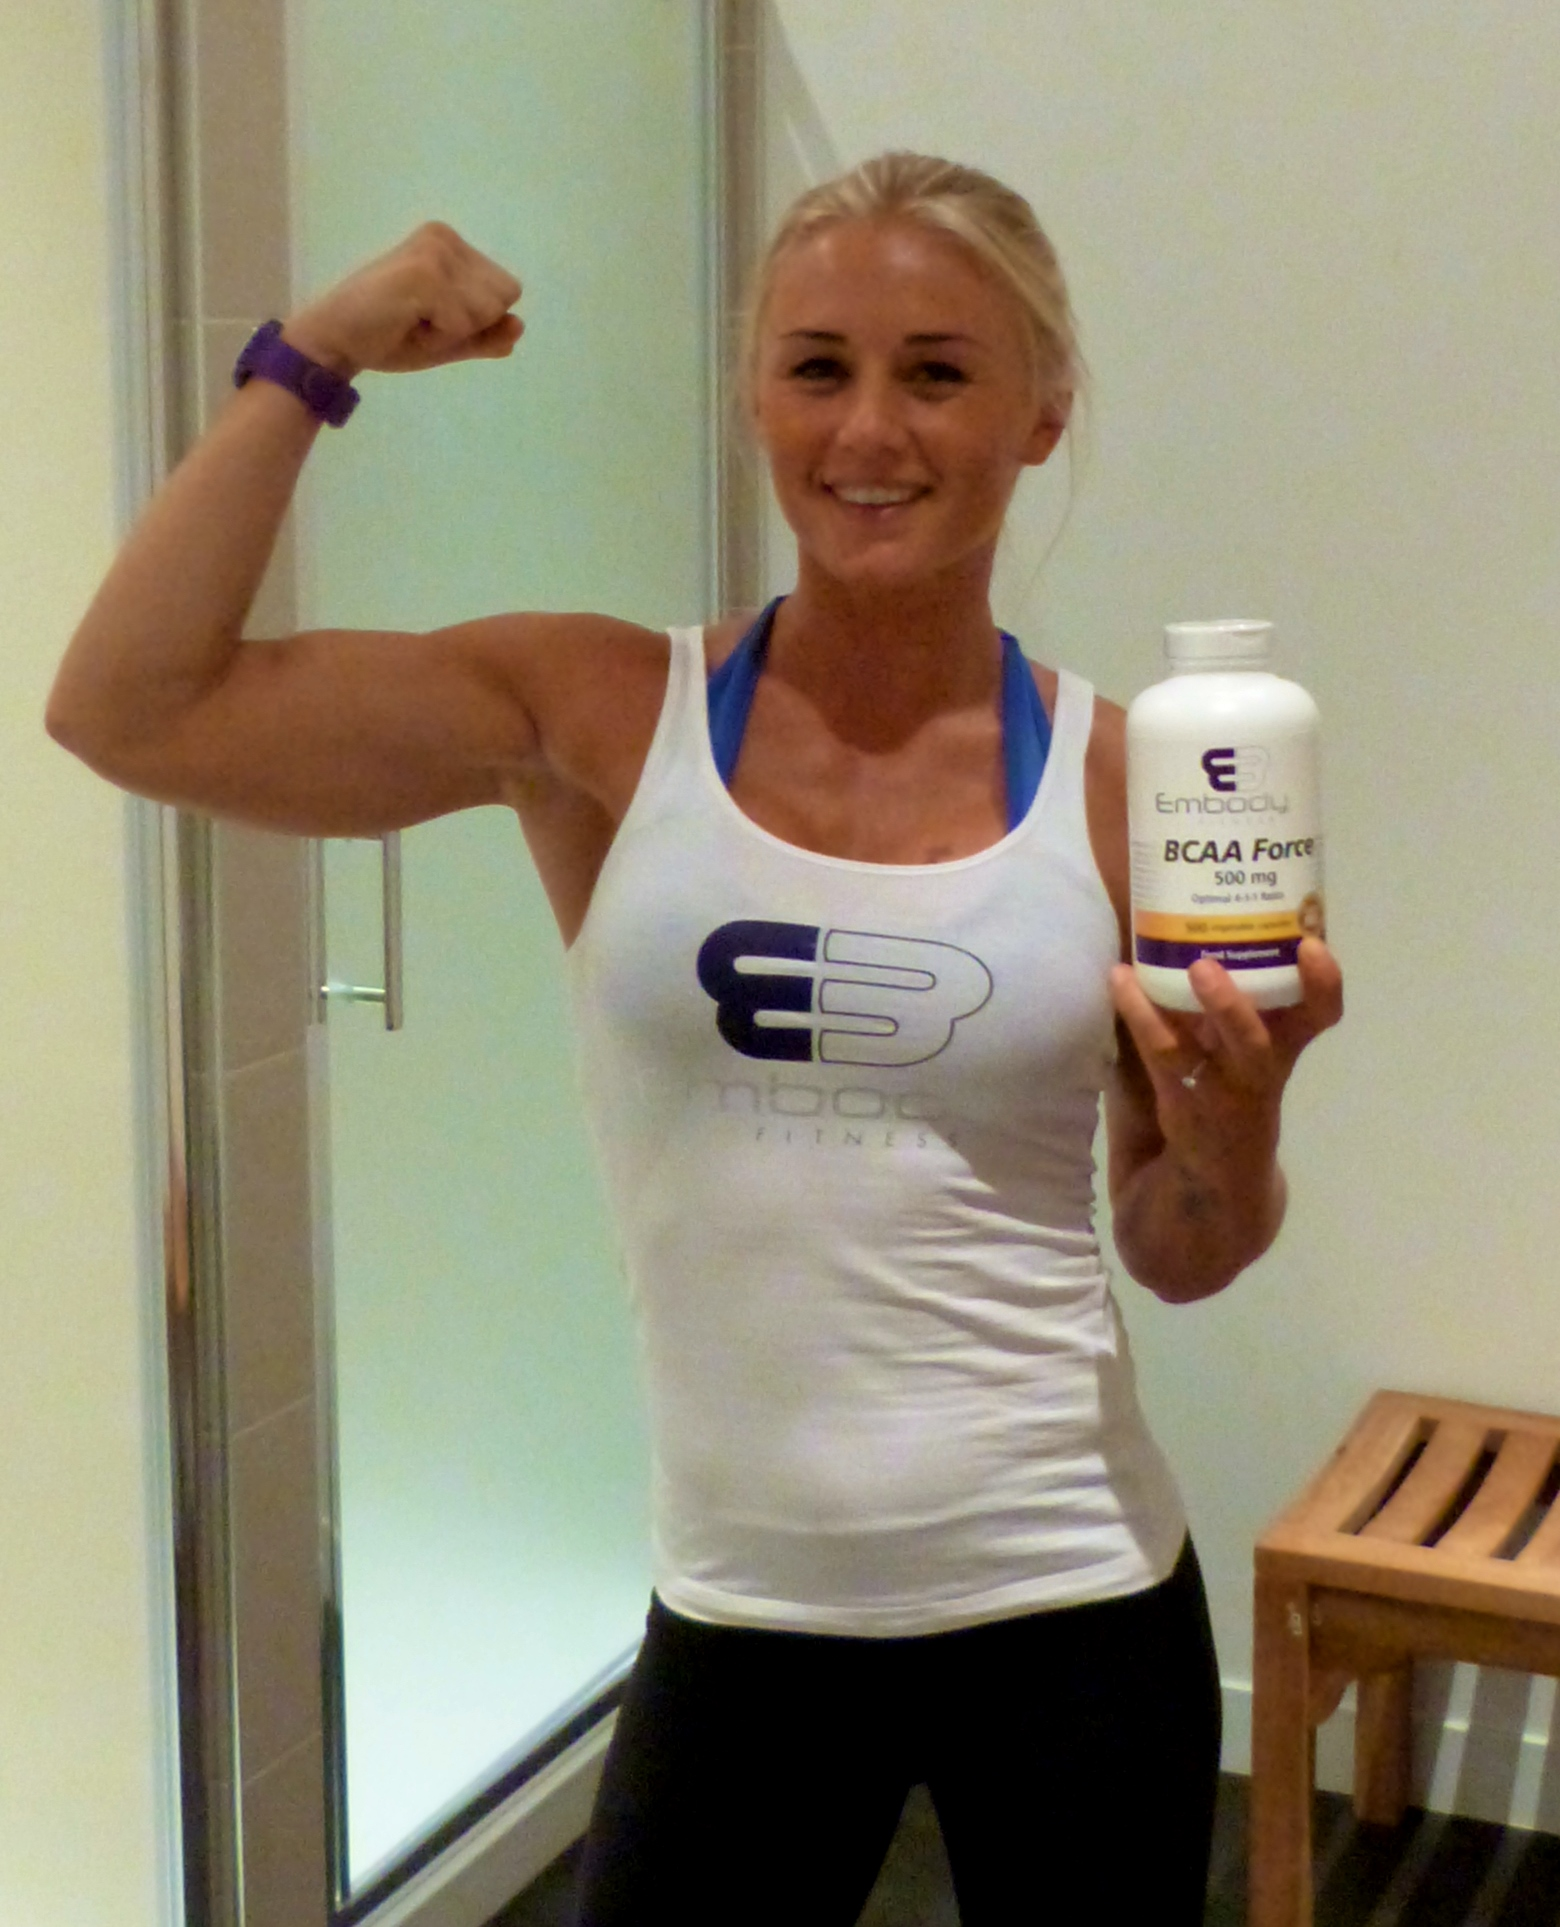 BCAA Supplements: What You Need to Know | Embody Fitness